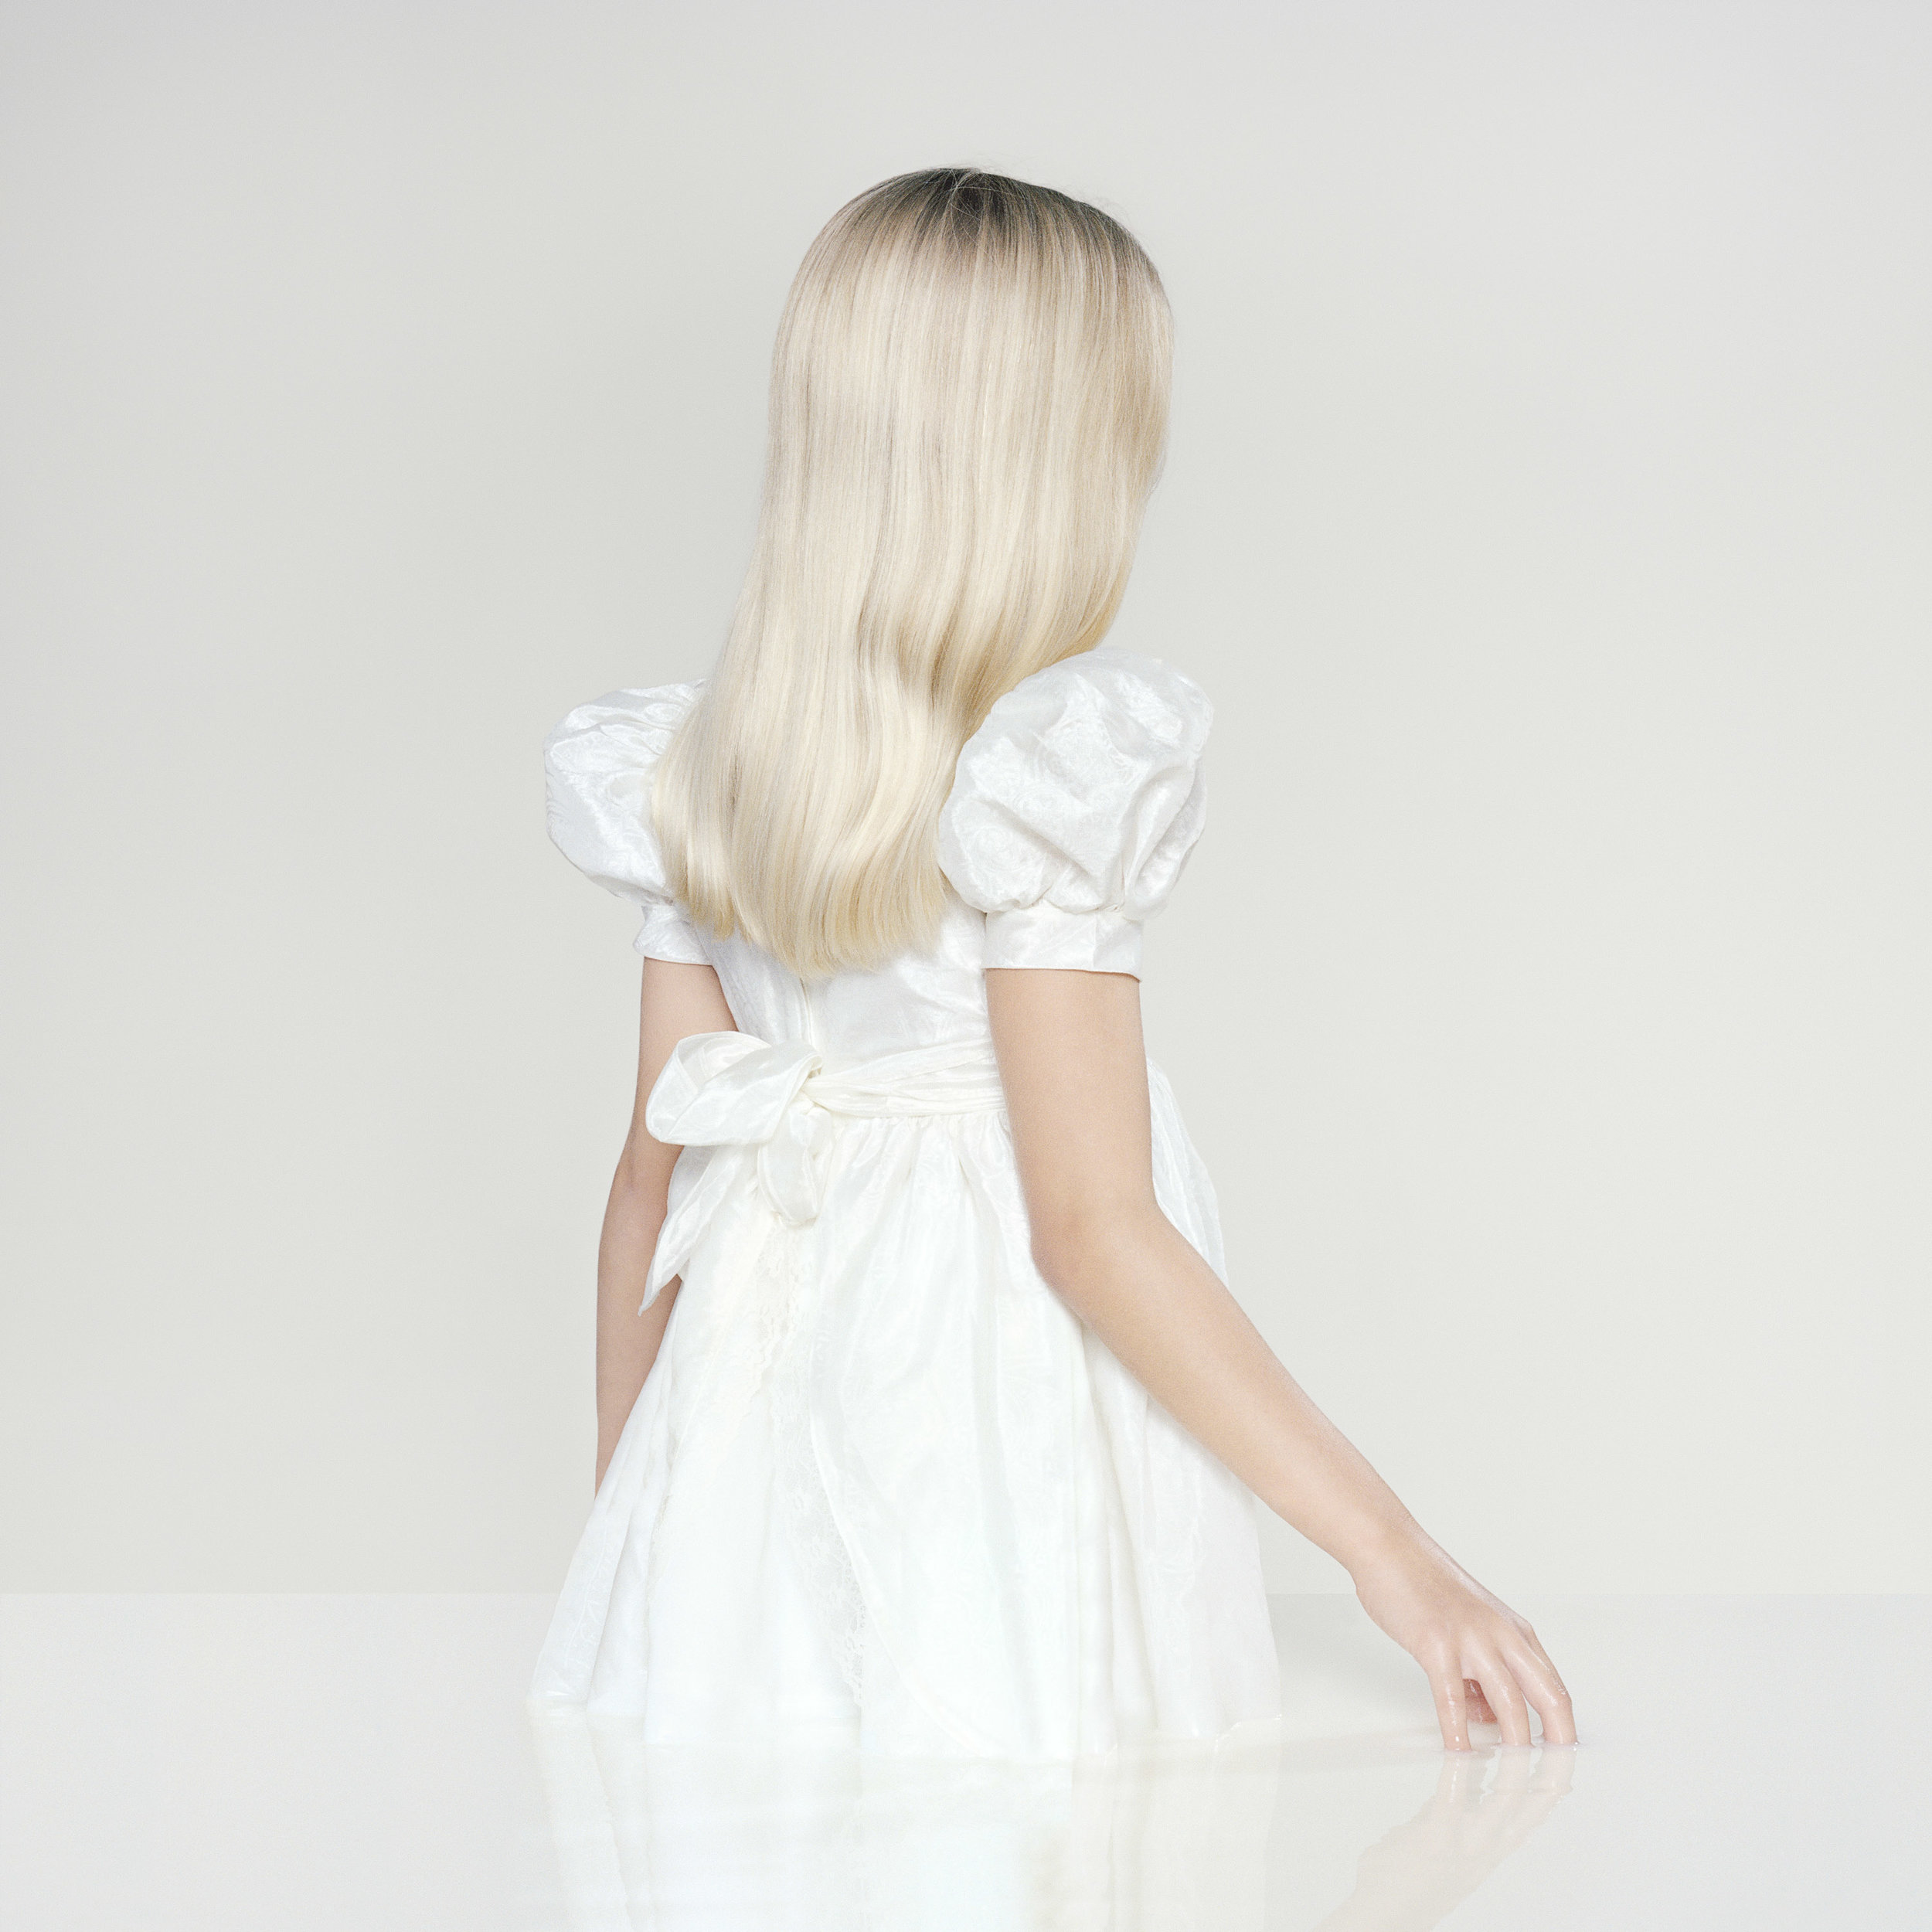 Infinity,  2011 by Petrina Hicks from the  Beautiful Creatures  series.